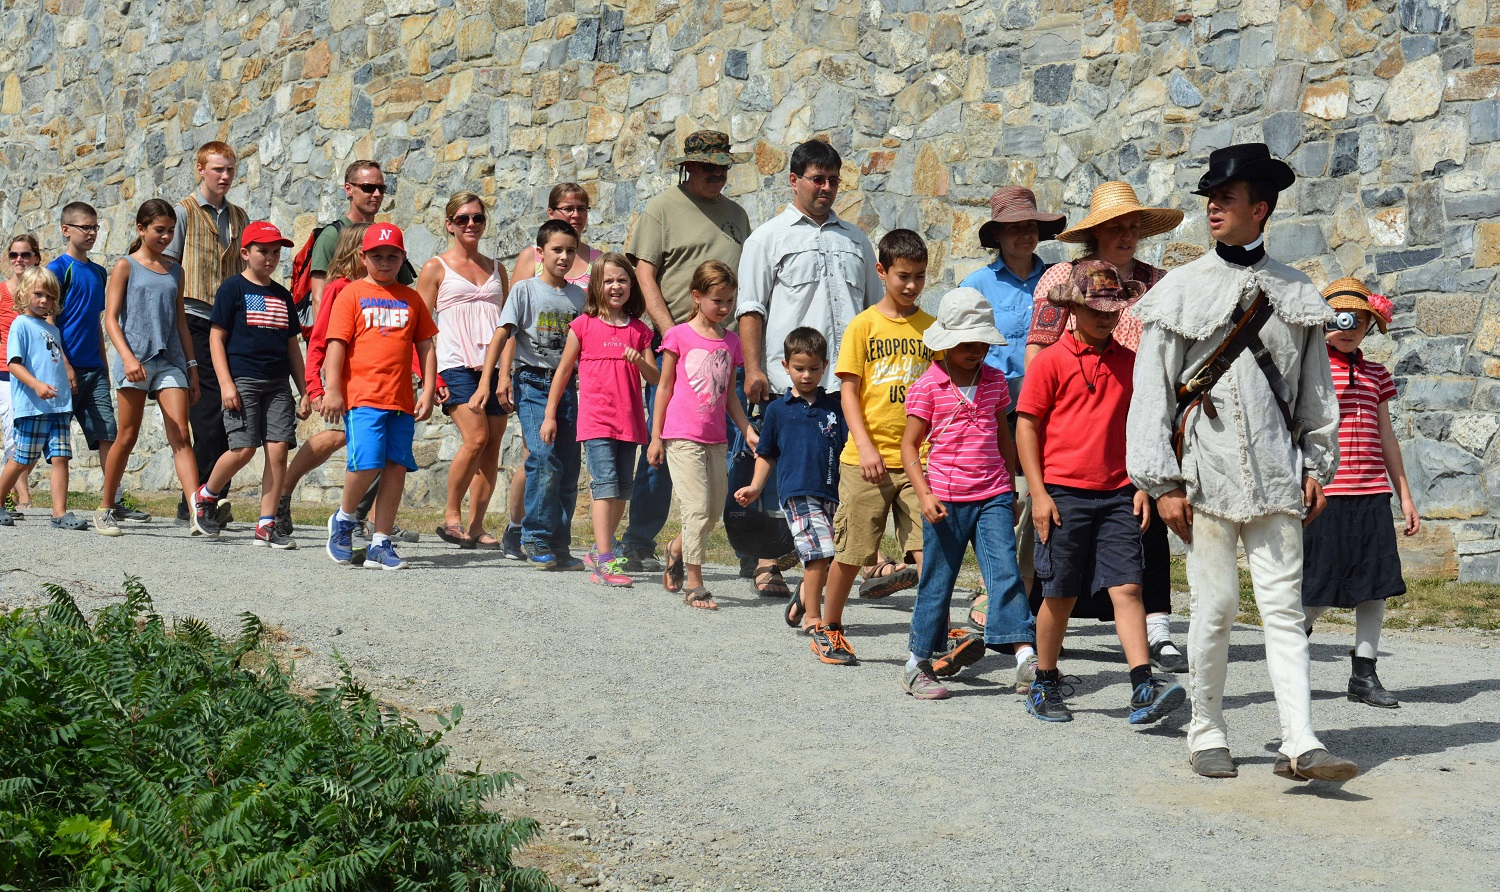 A double line of children and adults walking next to a stone wall.